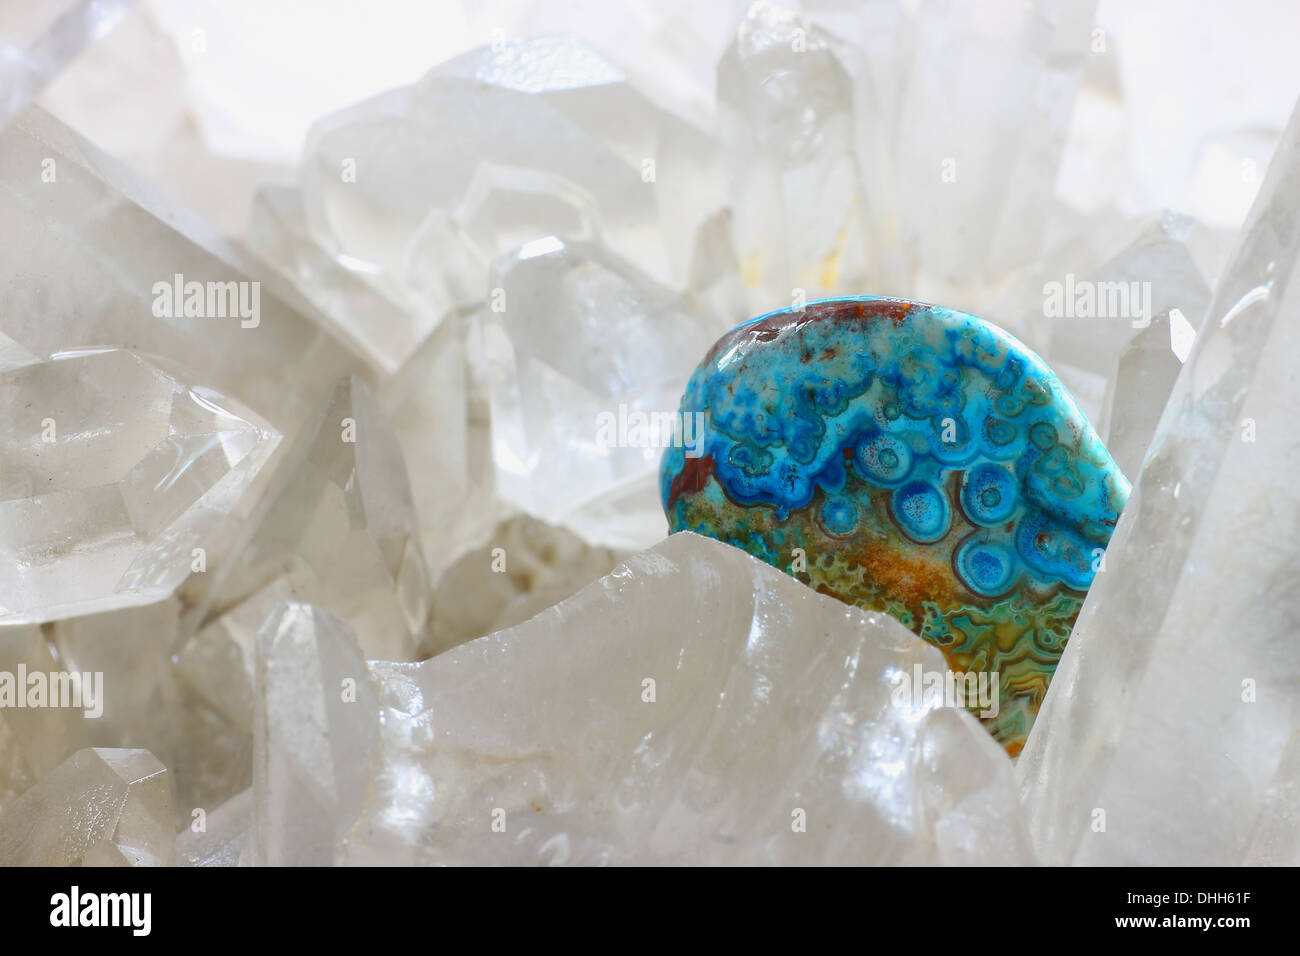 Turquoise in rock crystal - Stock Image